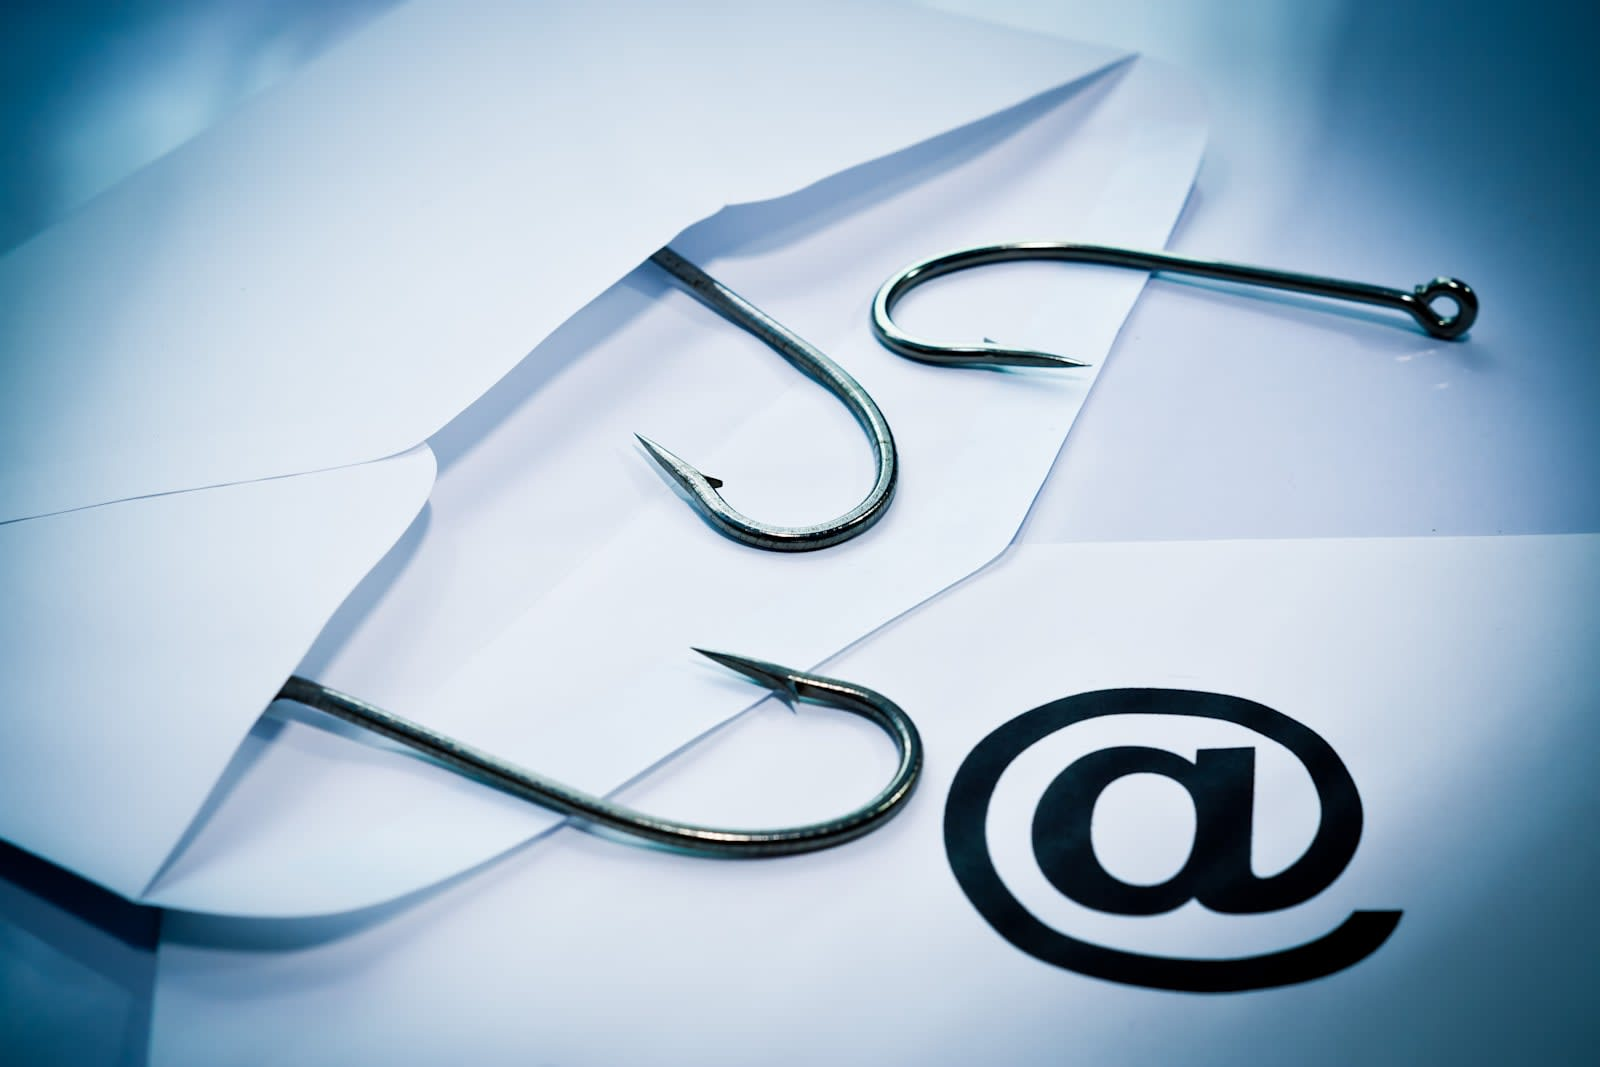 Google explains how it's preventing future email phishing scams